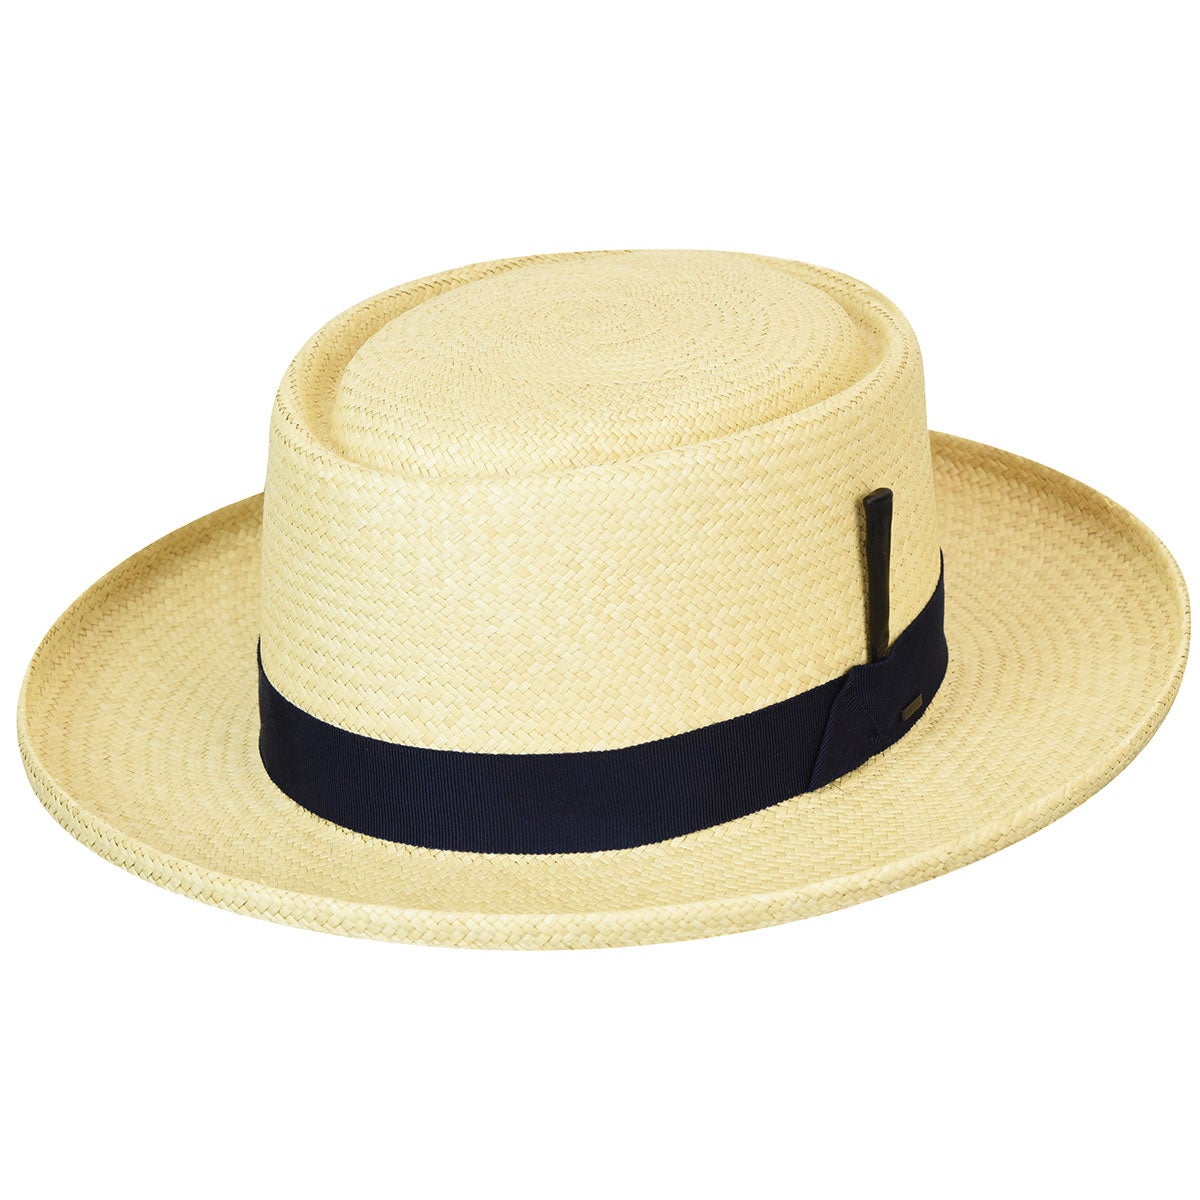 1950s Mens Hats | 50s Vintage Men's Hats Creed Pork Pie $160.00 AT vintagedancer.com